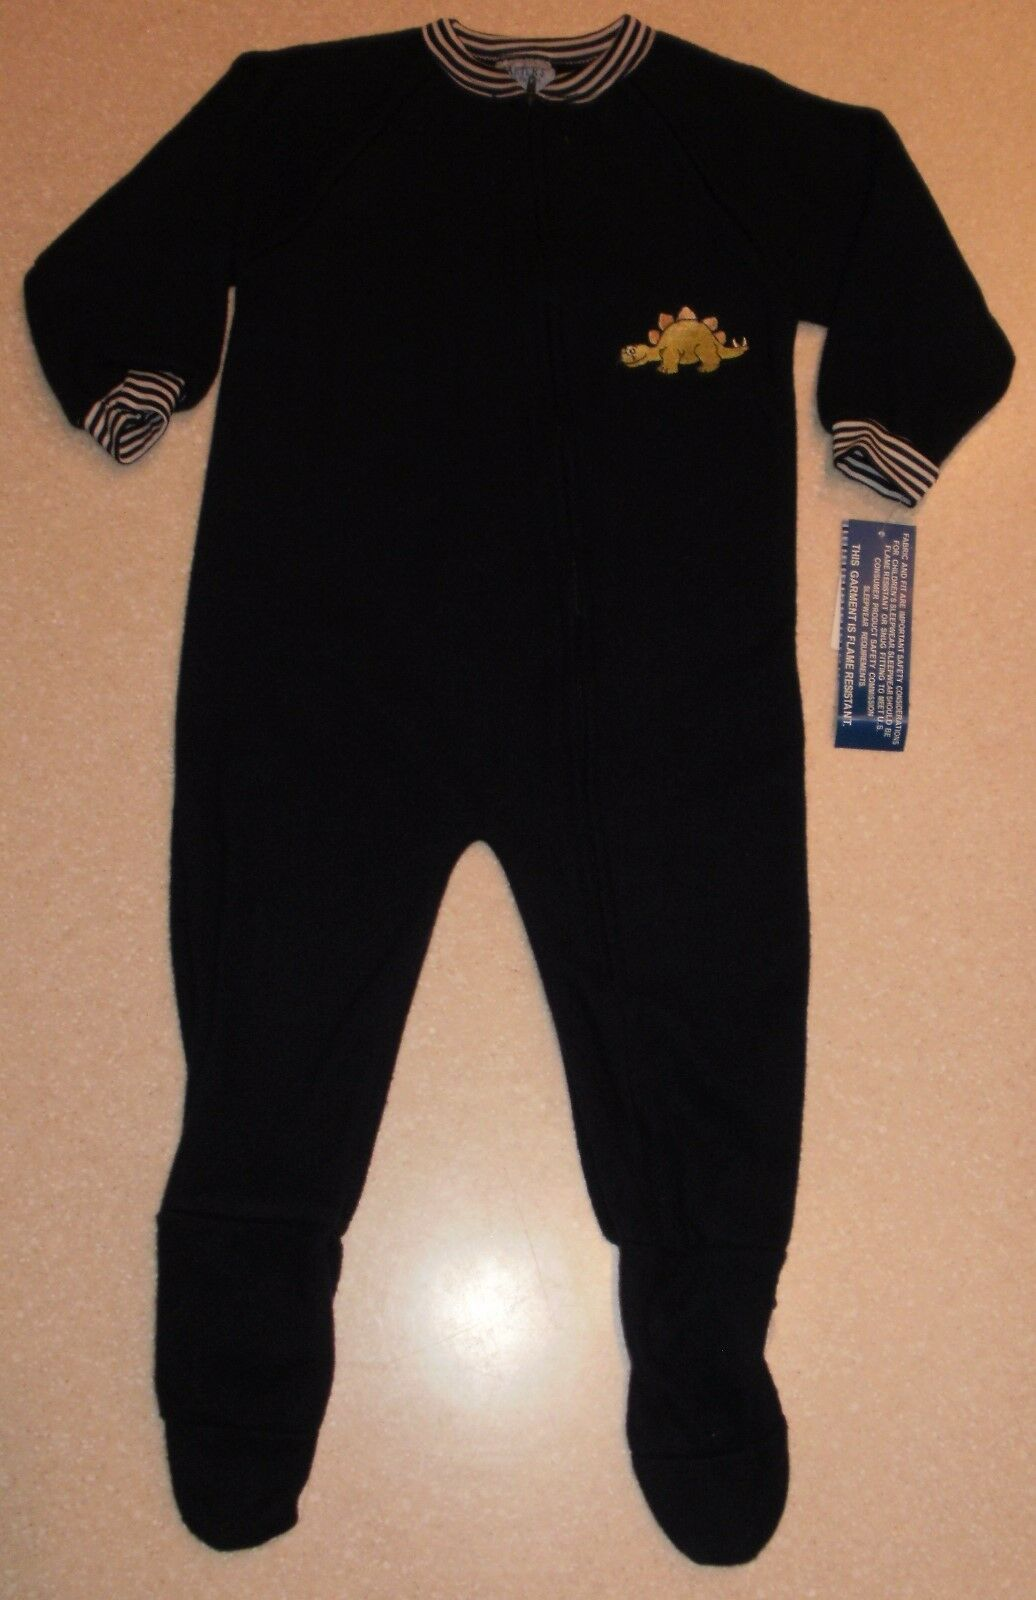 Mickey Mouse /& Paw Patrol Toddler Boys Blanket Sleepers PJs Sizes 3T,4T /& 5T NWT